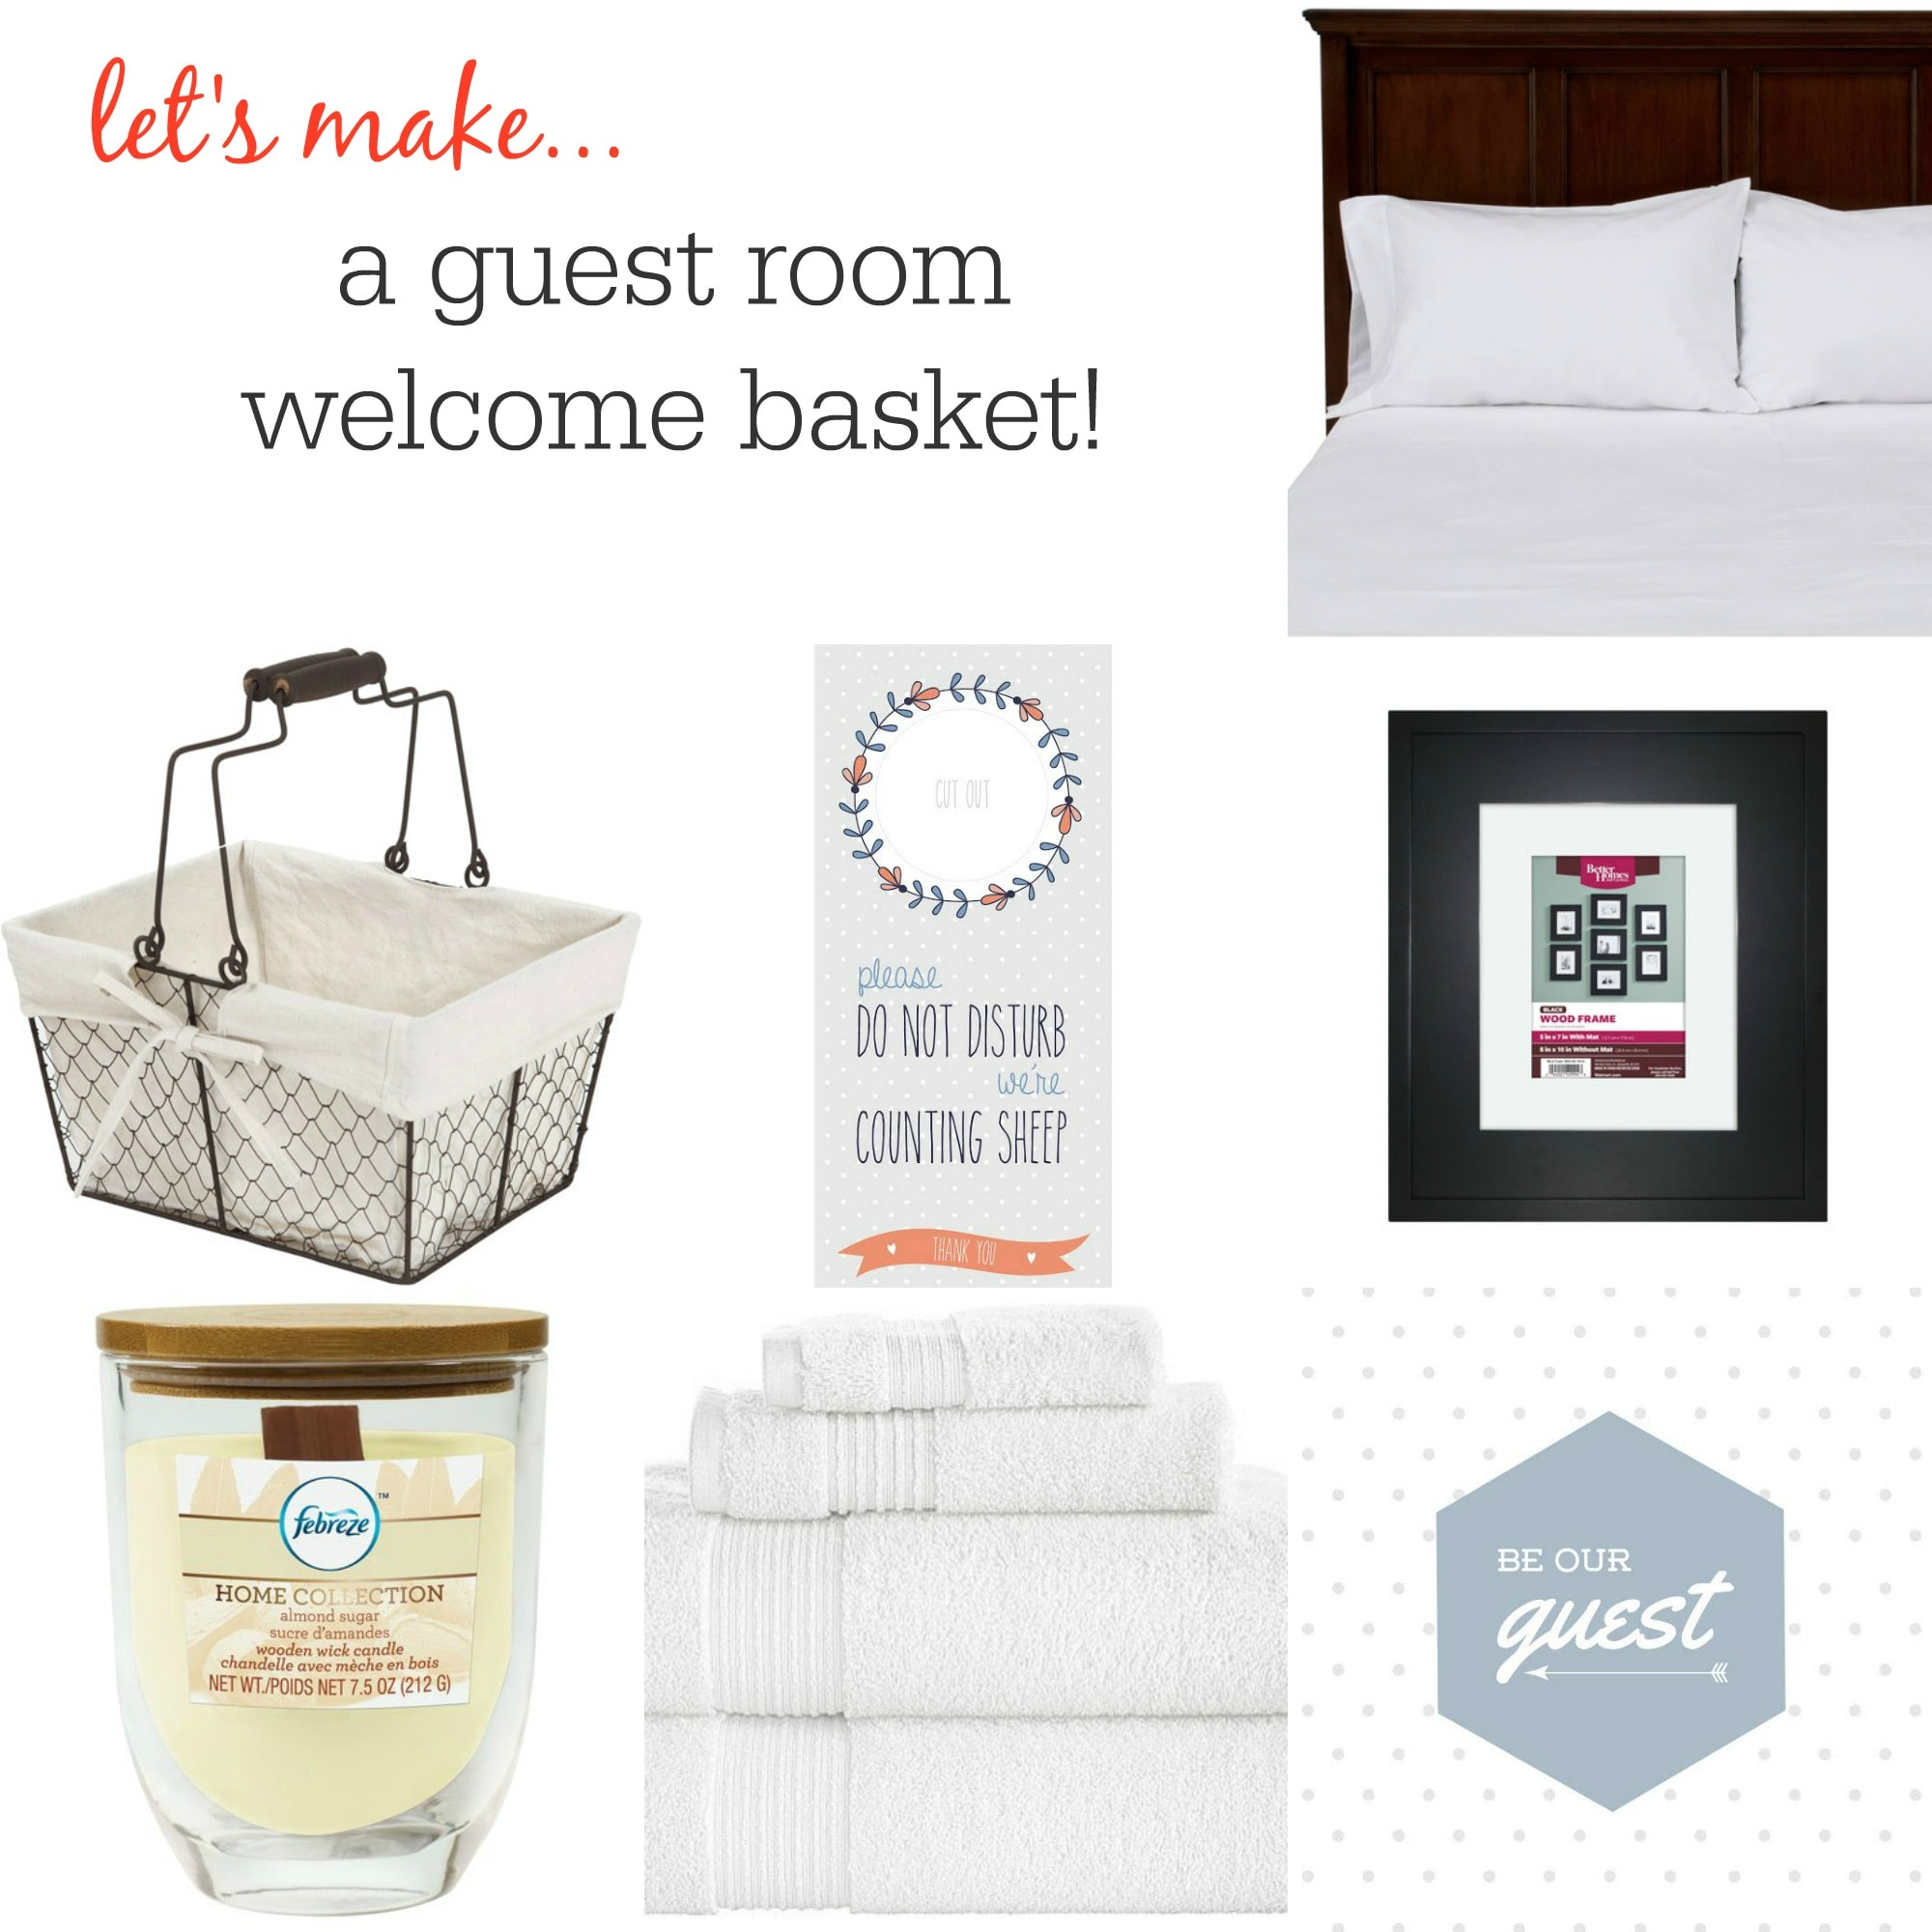 Make A Guest Room Welcome Basket With 5 FREE Printables MomAdvice